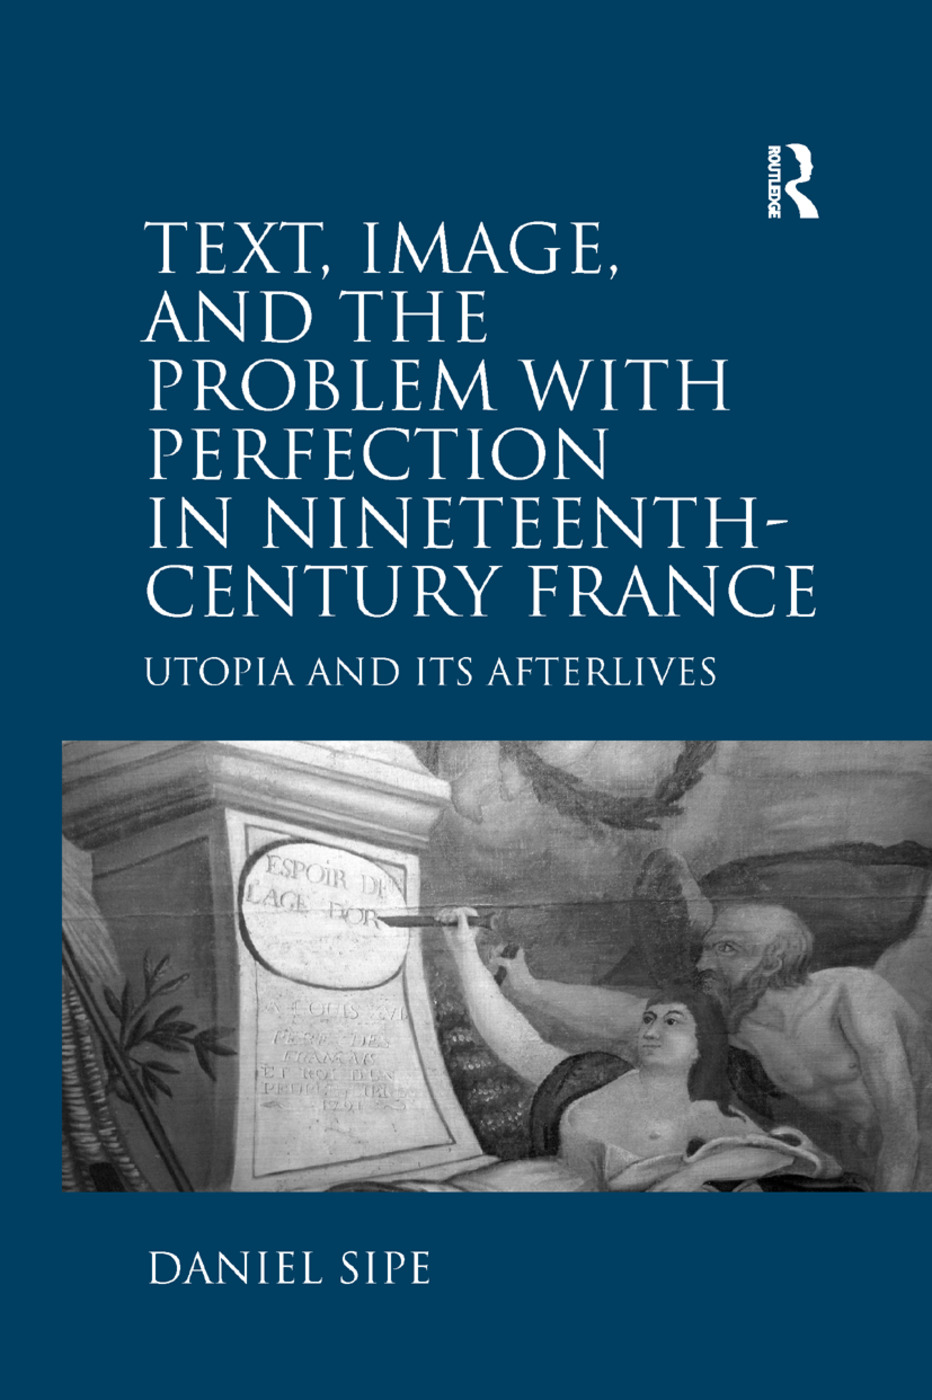 Text, Image, and the Problem with Perfection in Nineteenth-Century France: Utopia and Its Afterlives book cover